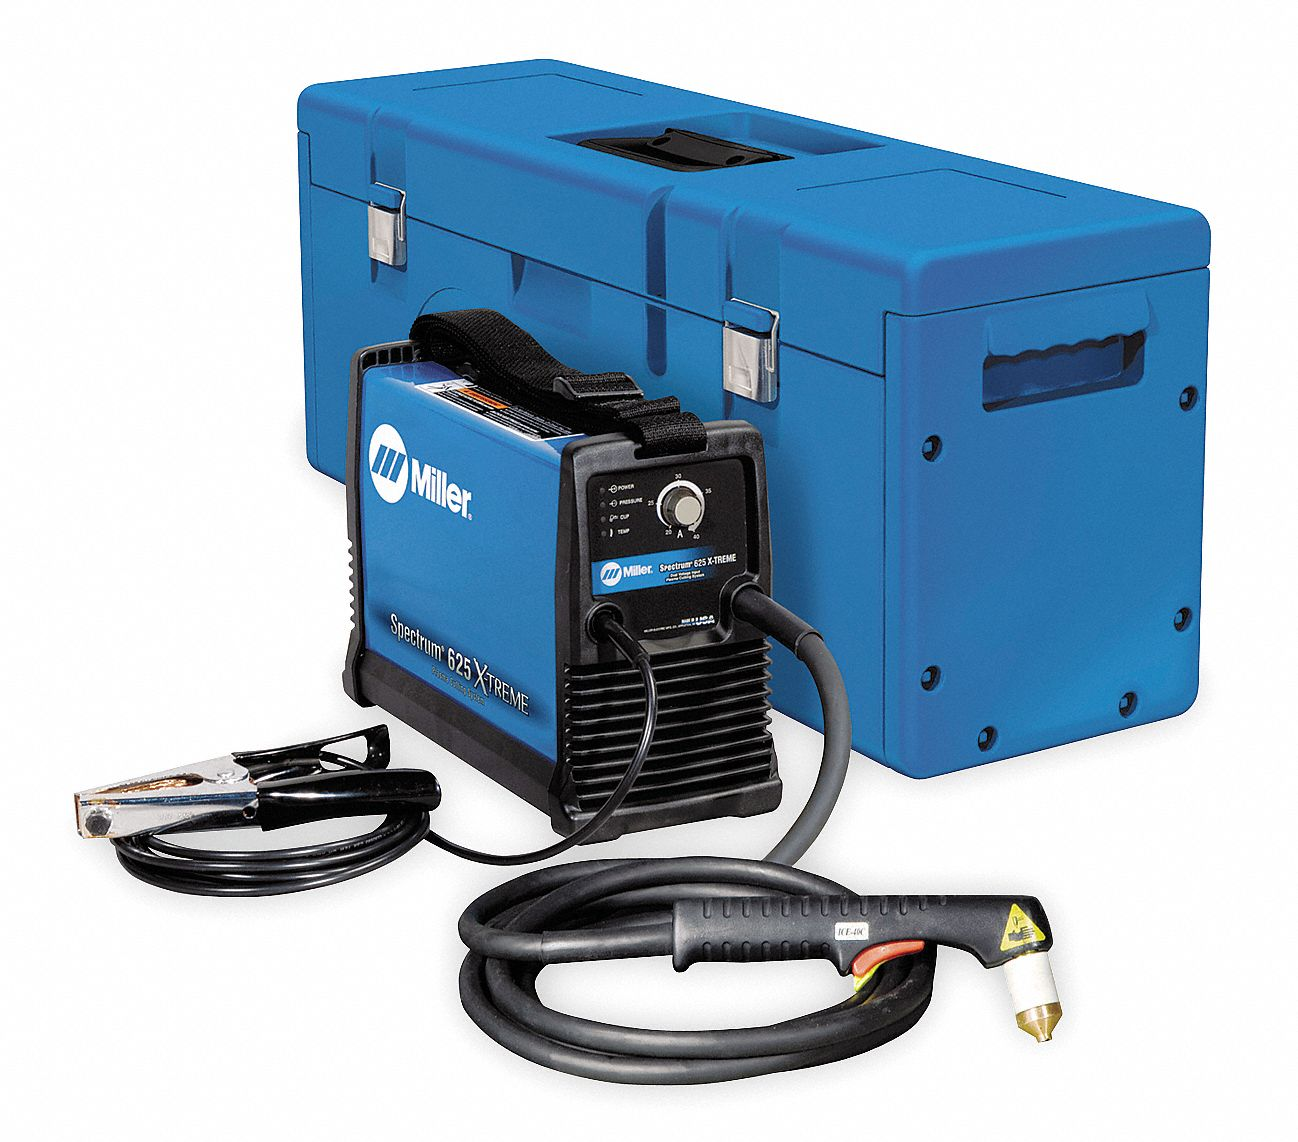 Miller Spectrum 625 >> Miller Air Plasma Cutting System Spectrum 625 X Treme